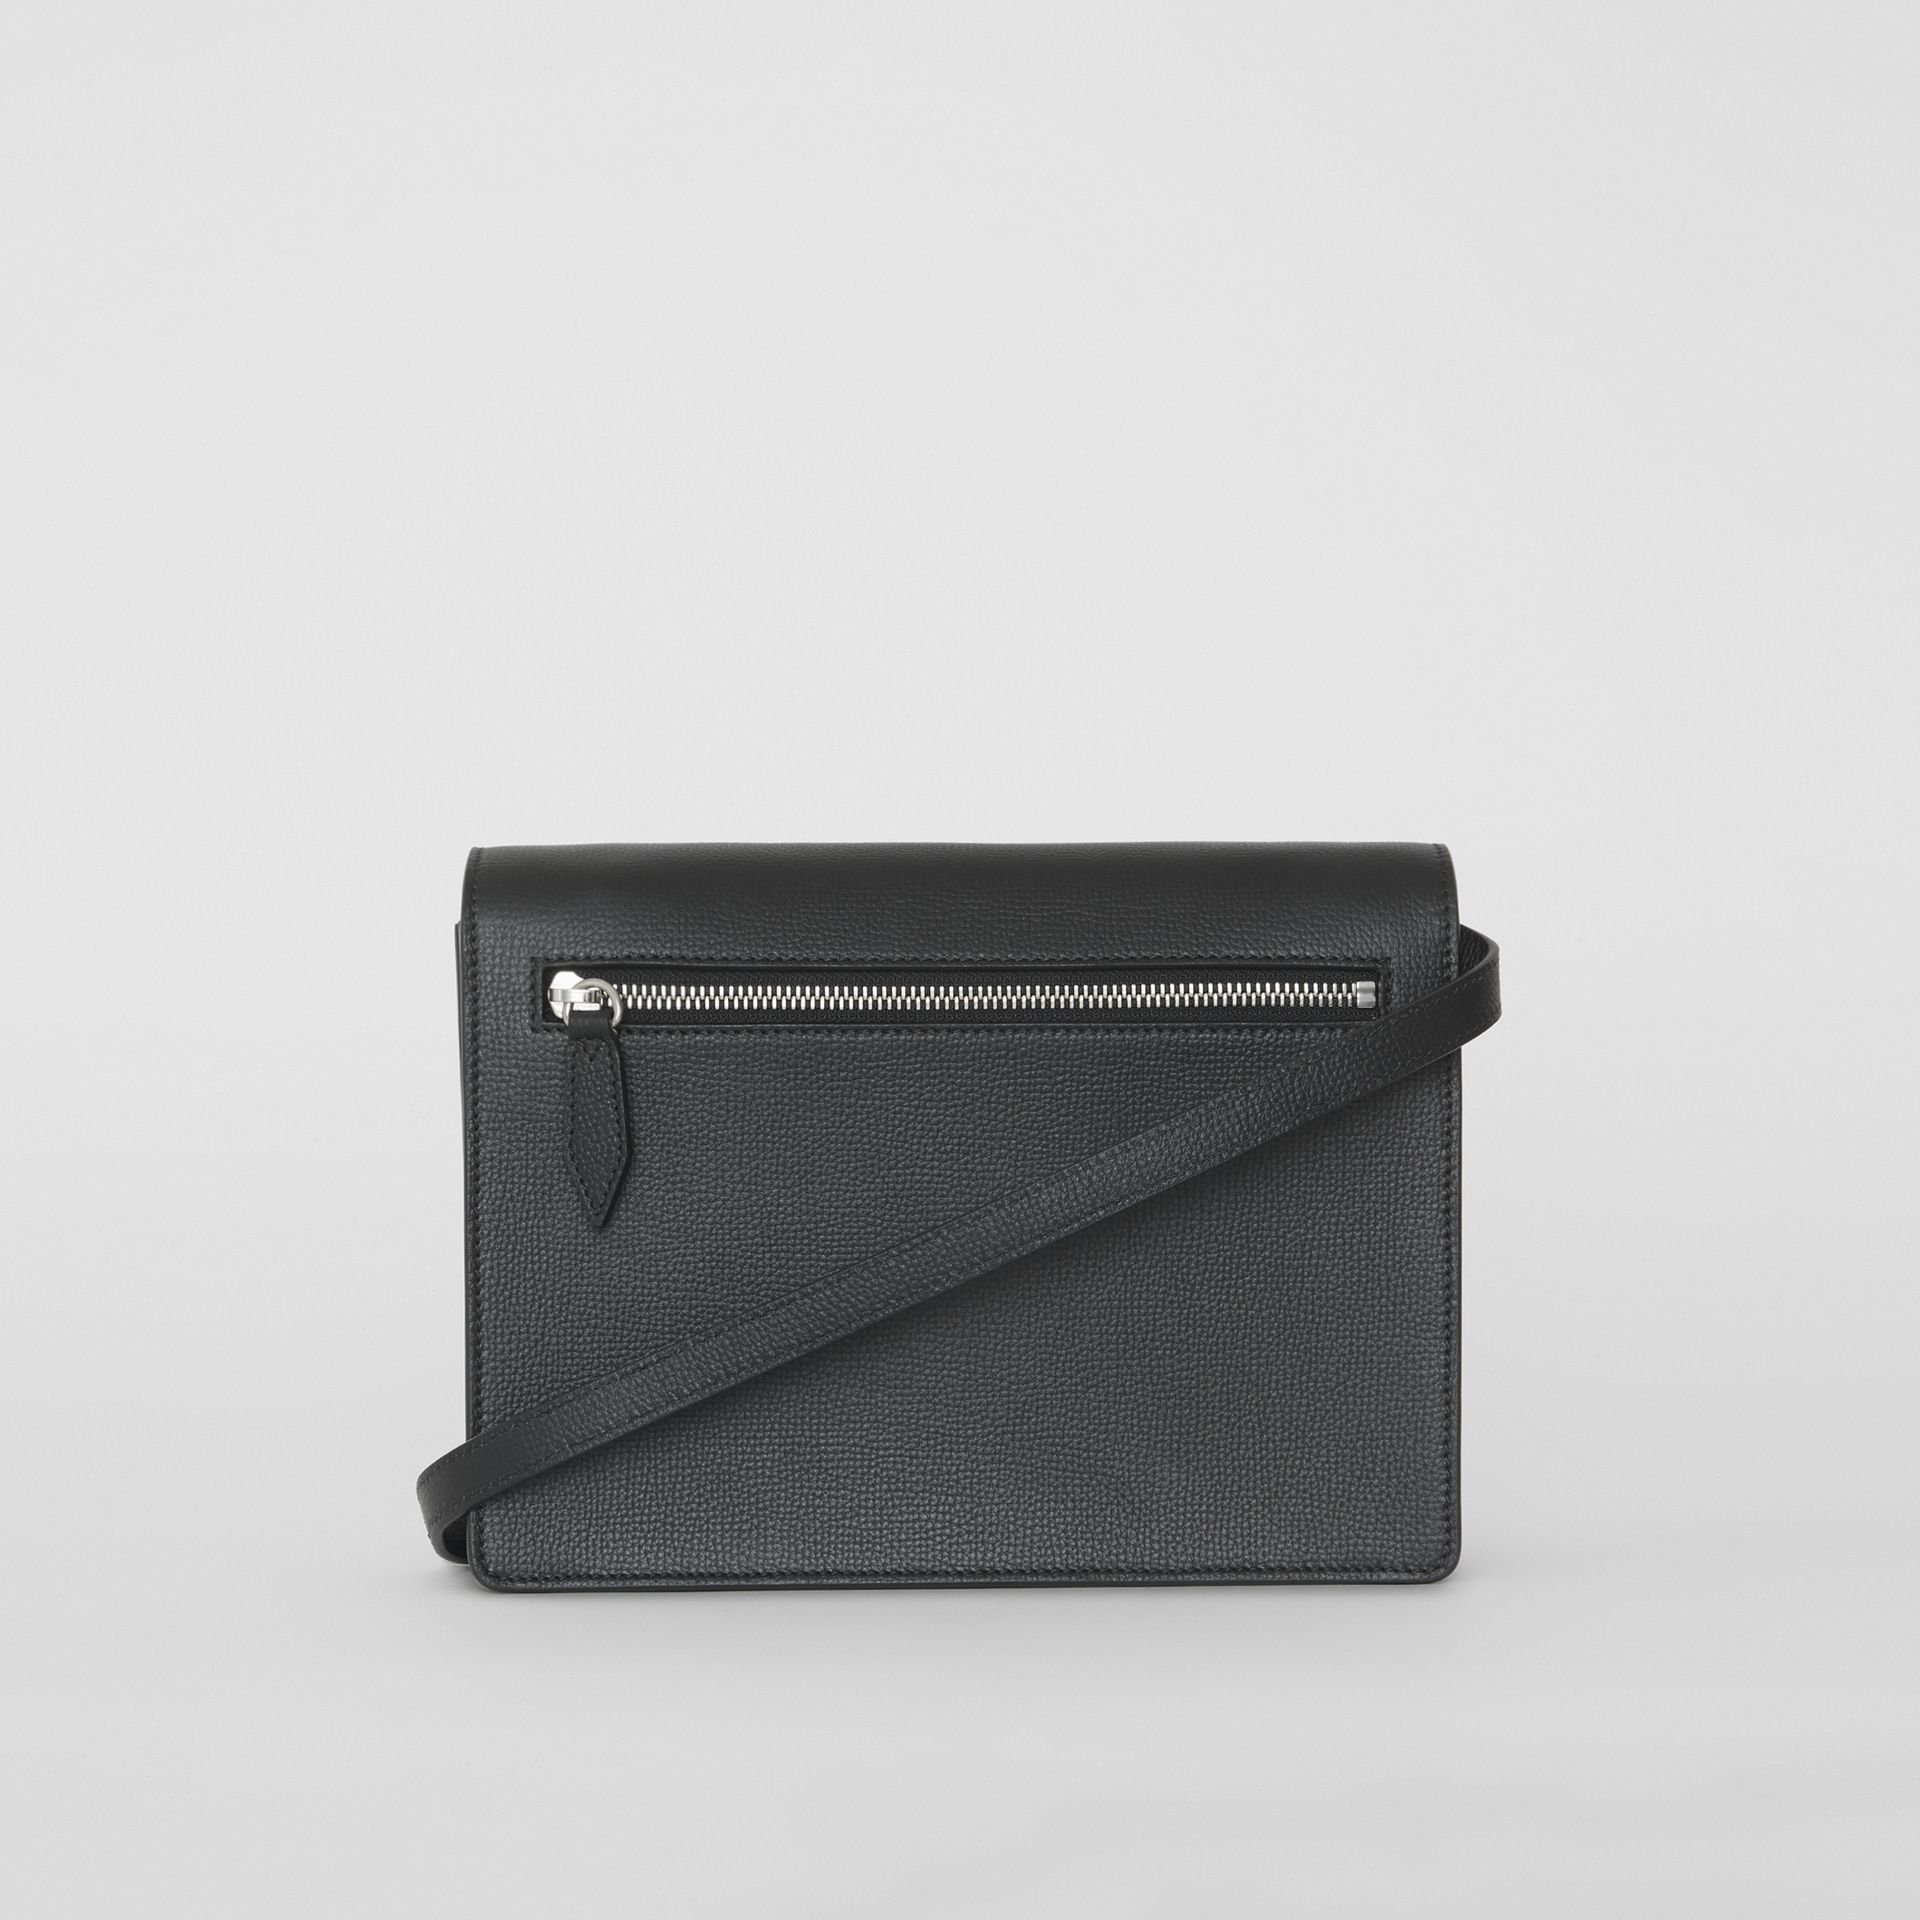 Small Vintage Check and Leather Crossbody Bag in Black - Women | Burberry Singapore - gallery image 7